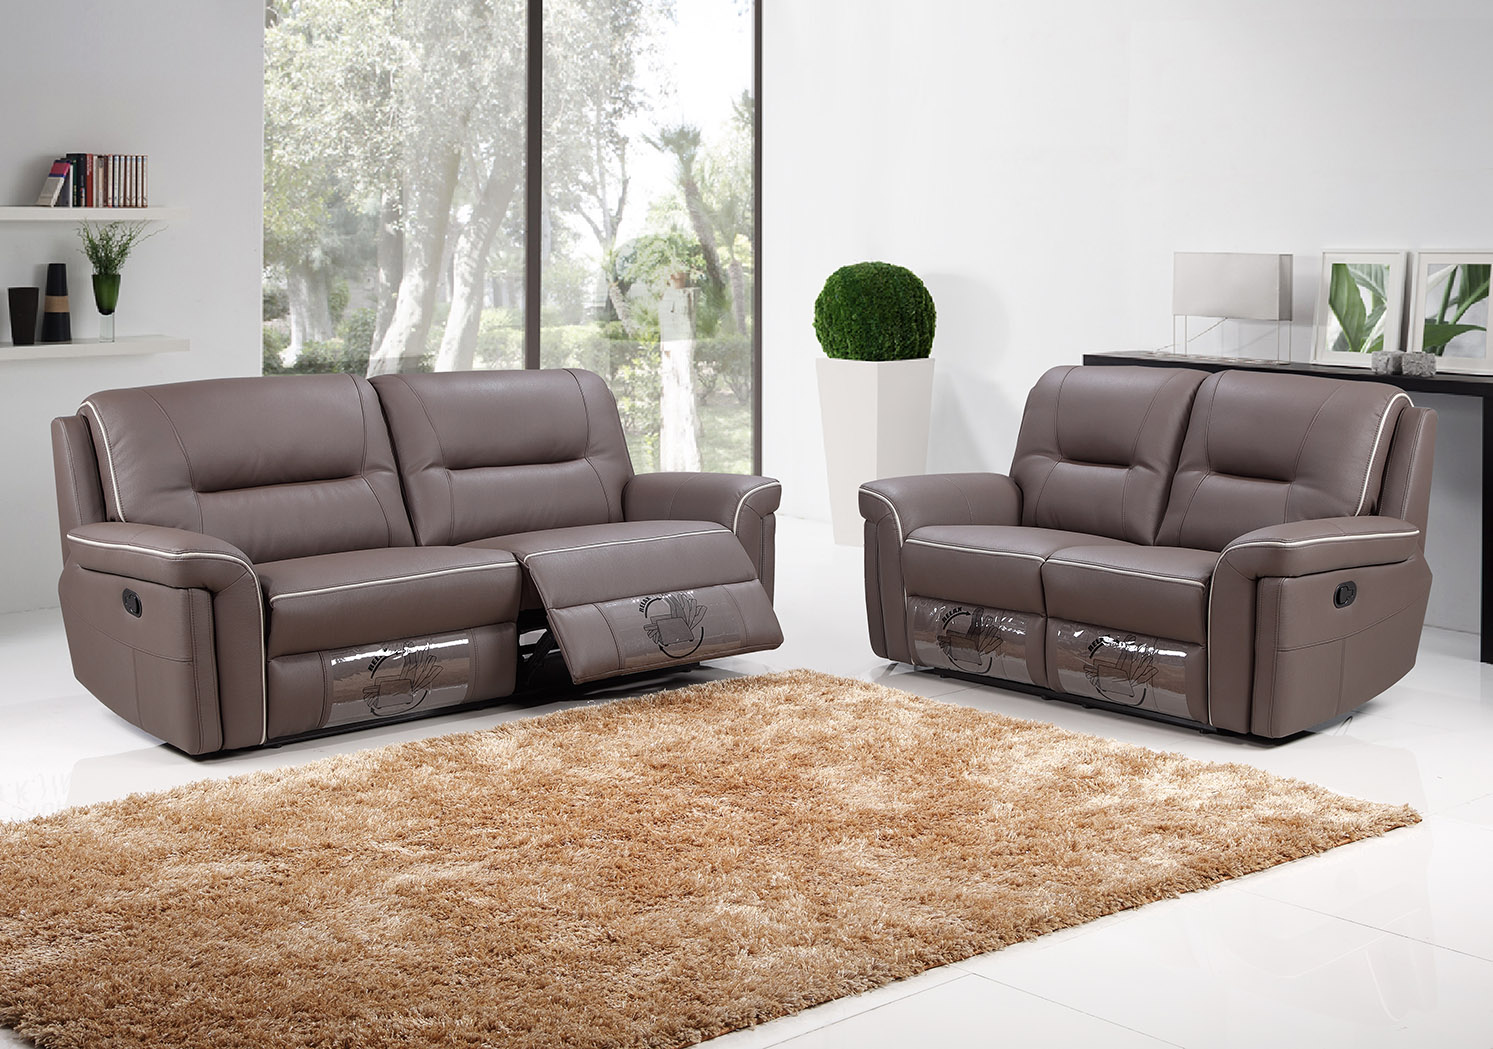 Recliner Lounge 3rr 432rr F9203 Modern Recliner Lounges Suite Fortune